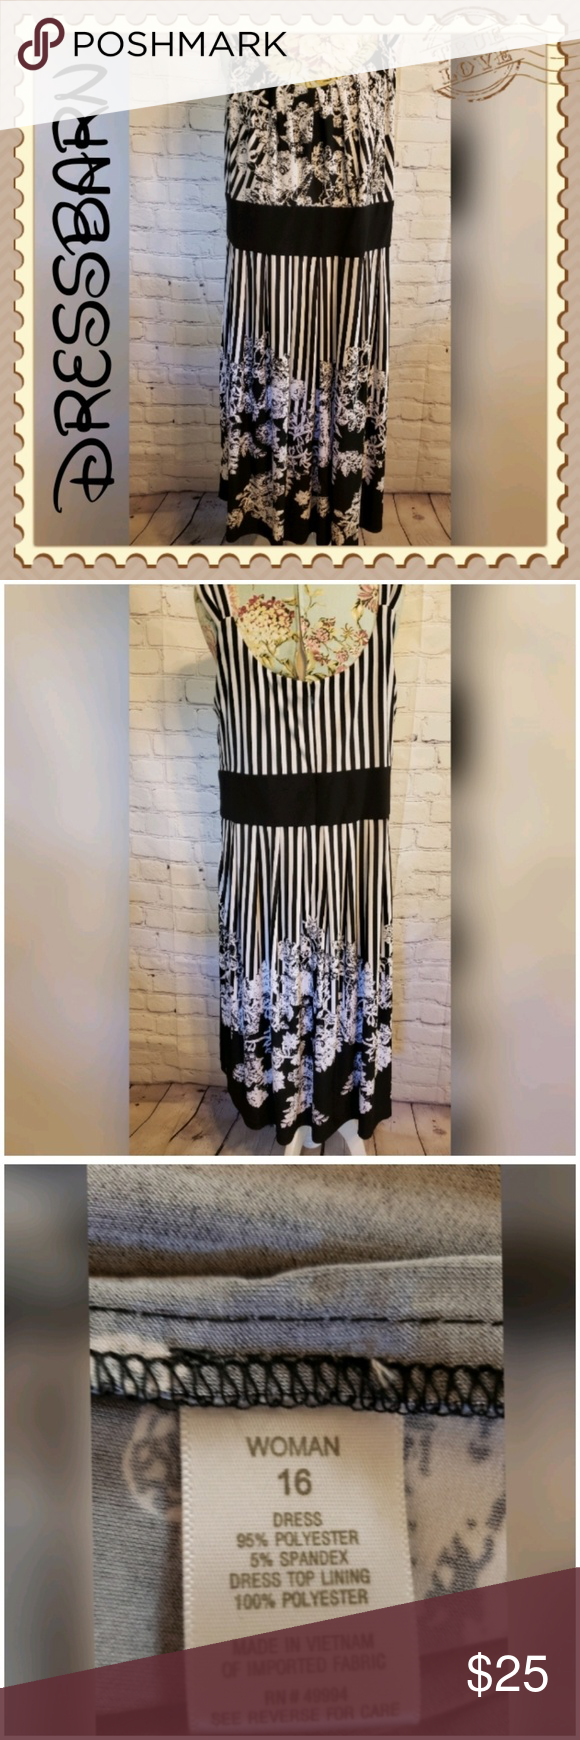 Dressbarn Black and White Floral sleeveless Dress #blacksleevelessdress